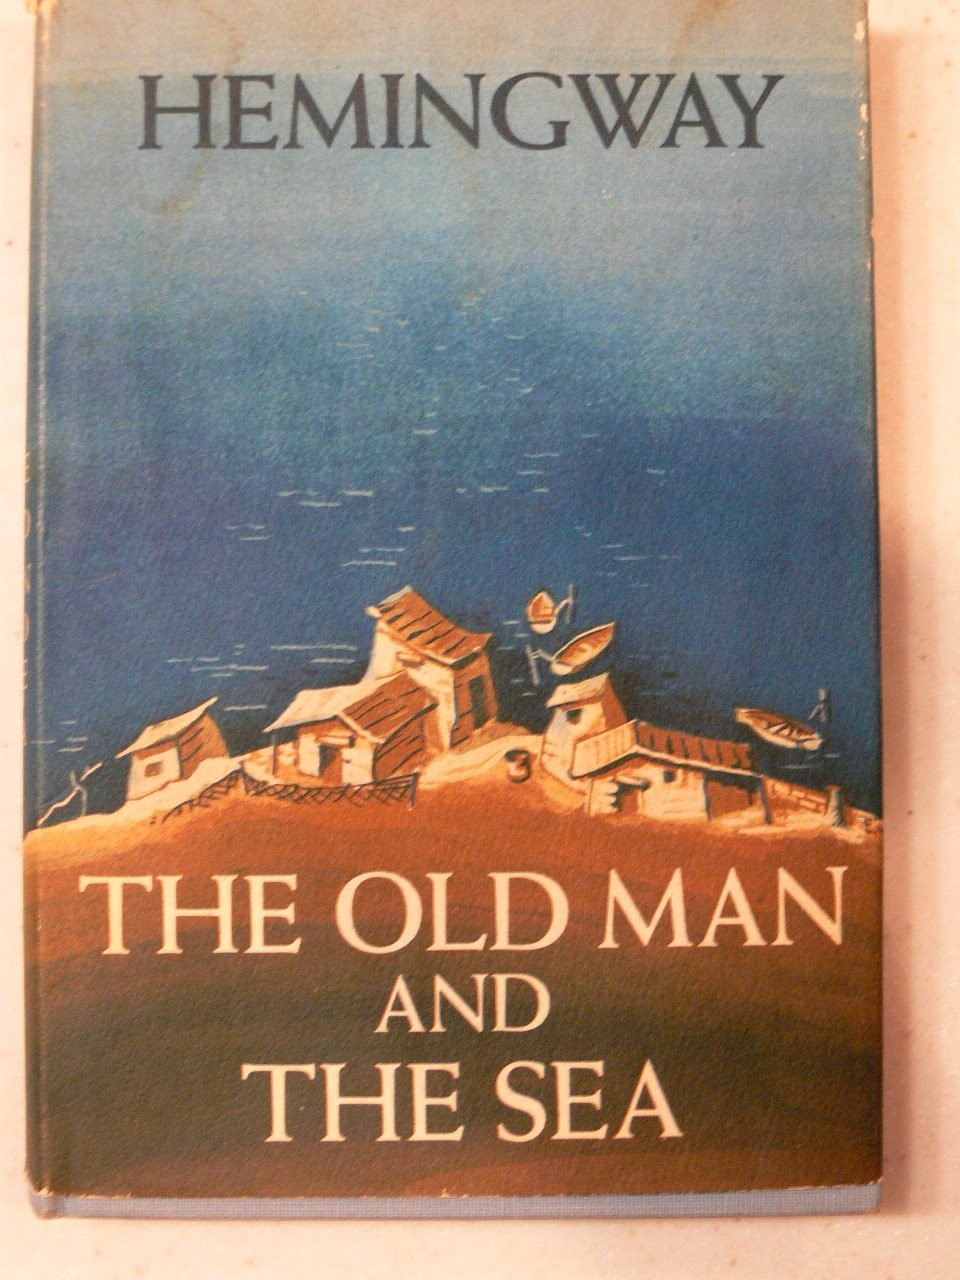 The Old Man and the Sea by Ernest Hemingway (Review)